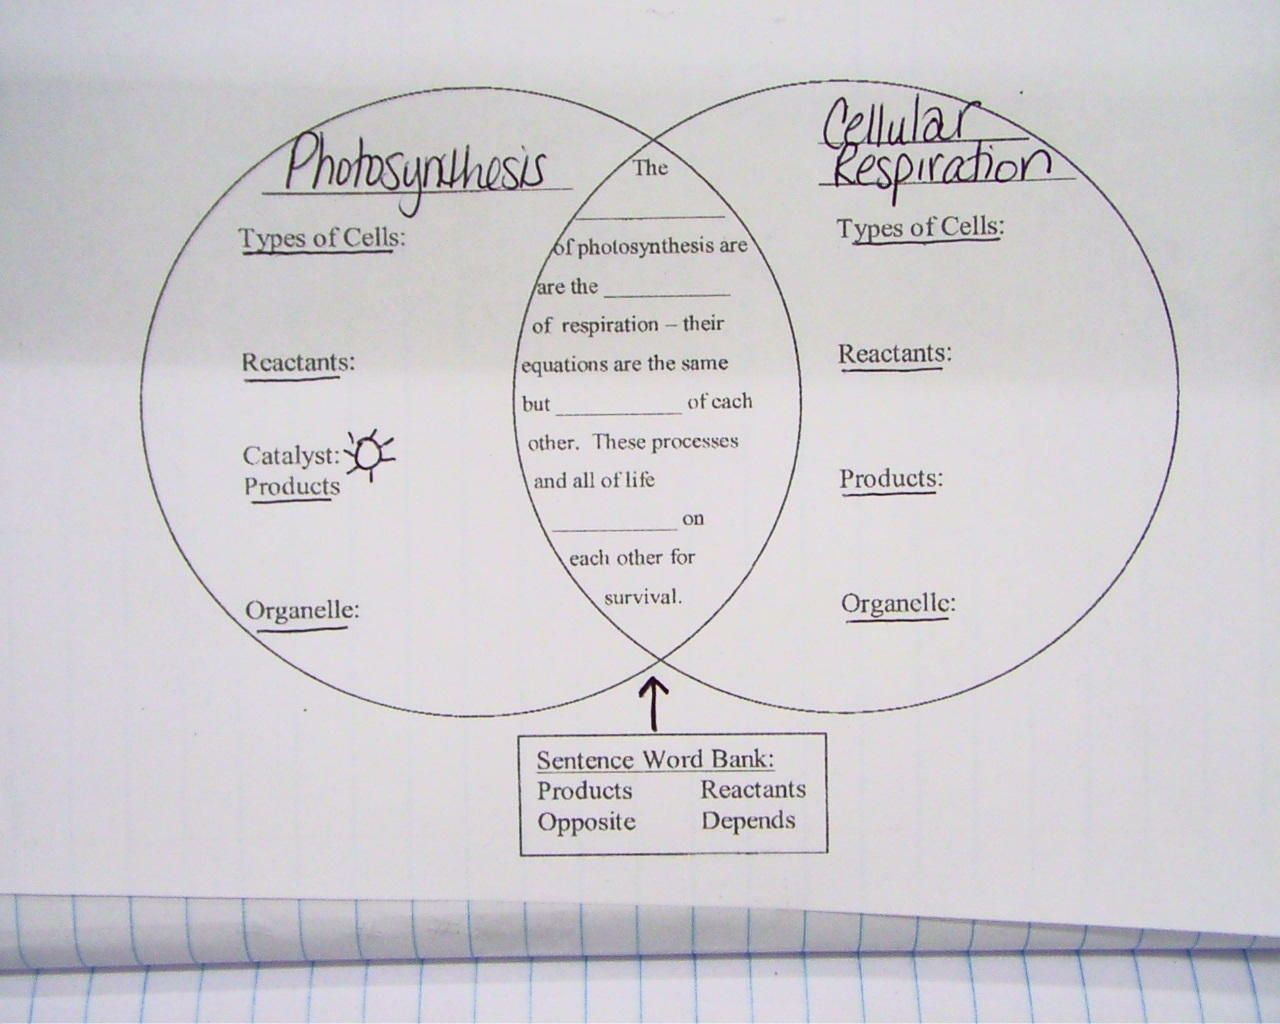 Worksheets Photosynthesis Diagram Worksheet Answers 1000 images about photosynthesis respiration on pinterest writing skills activities and assessment